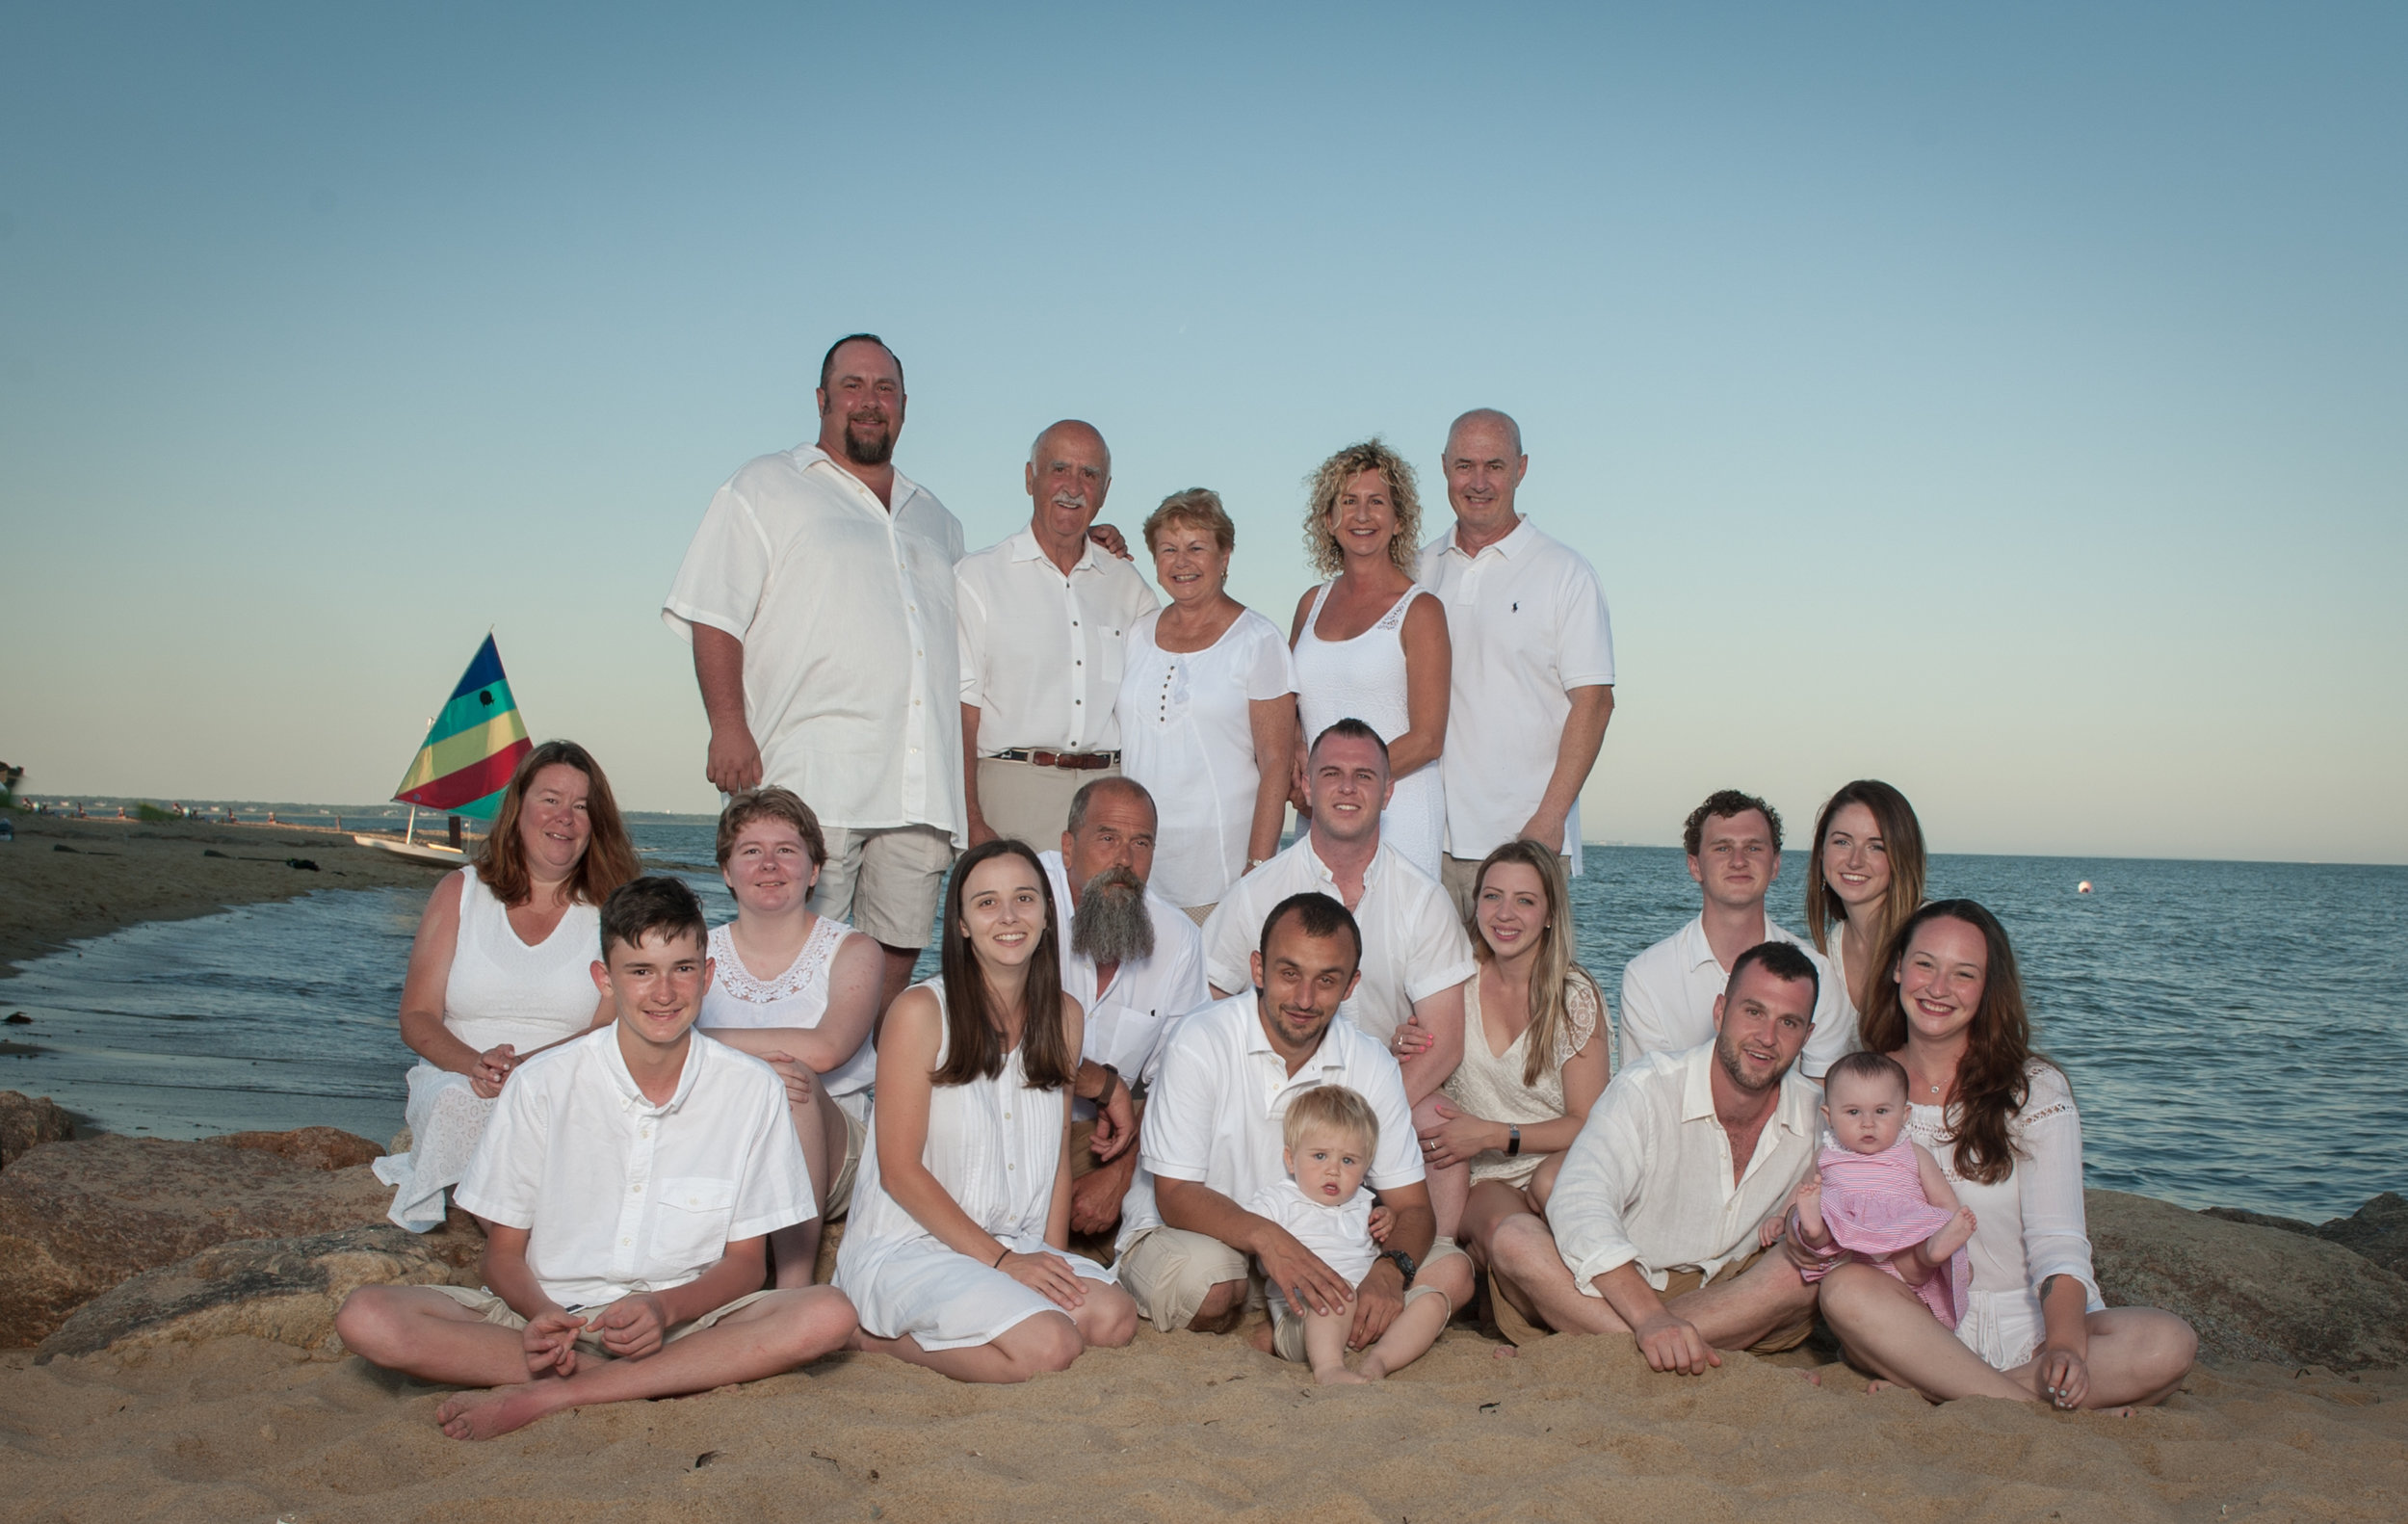 Large family sessions are the perfect way to document a moment in time. Fleeting Moments Photography makes sessions fun and painless.